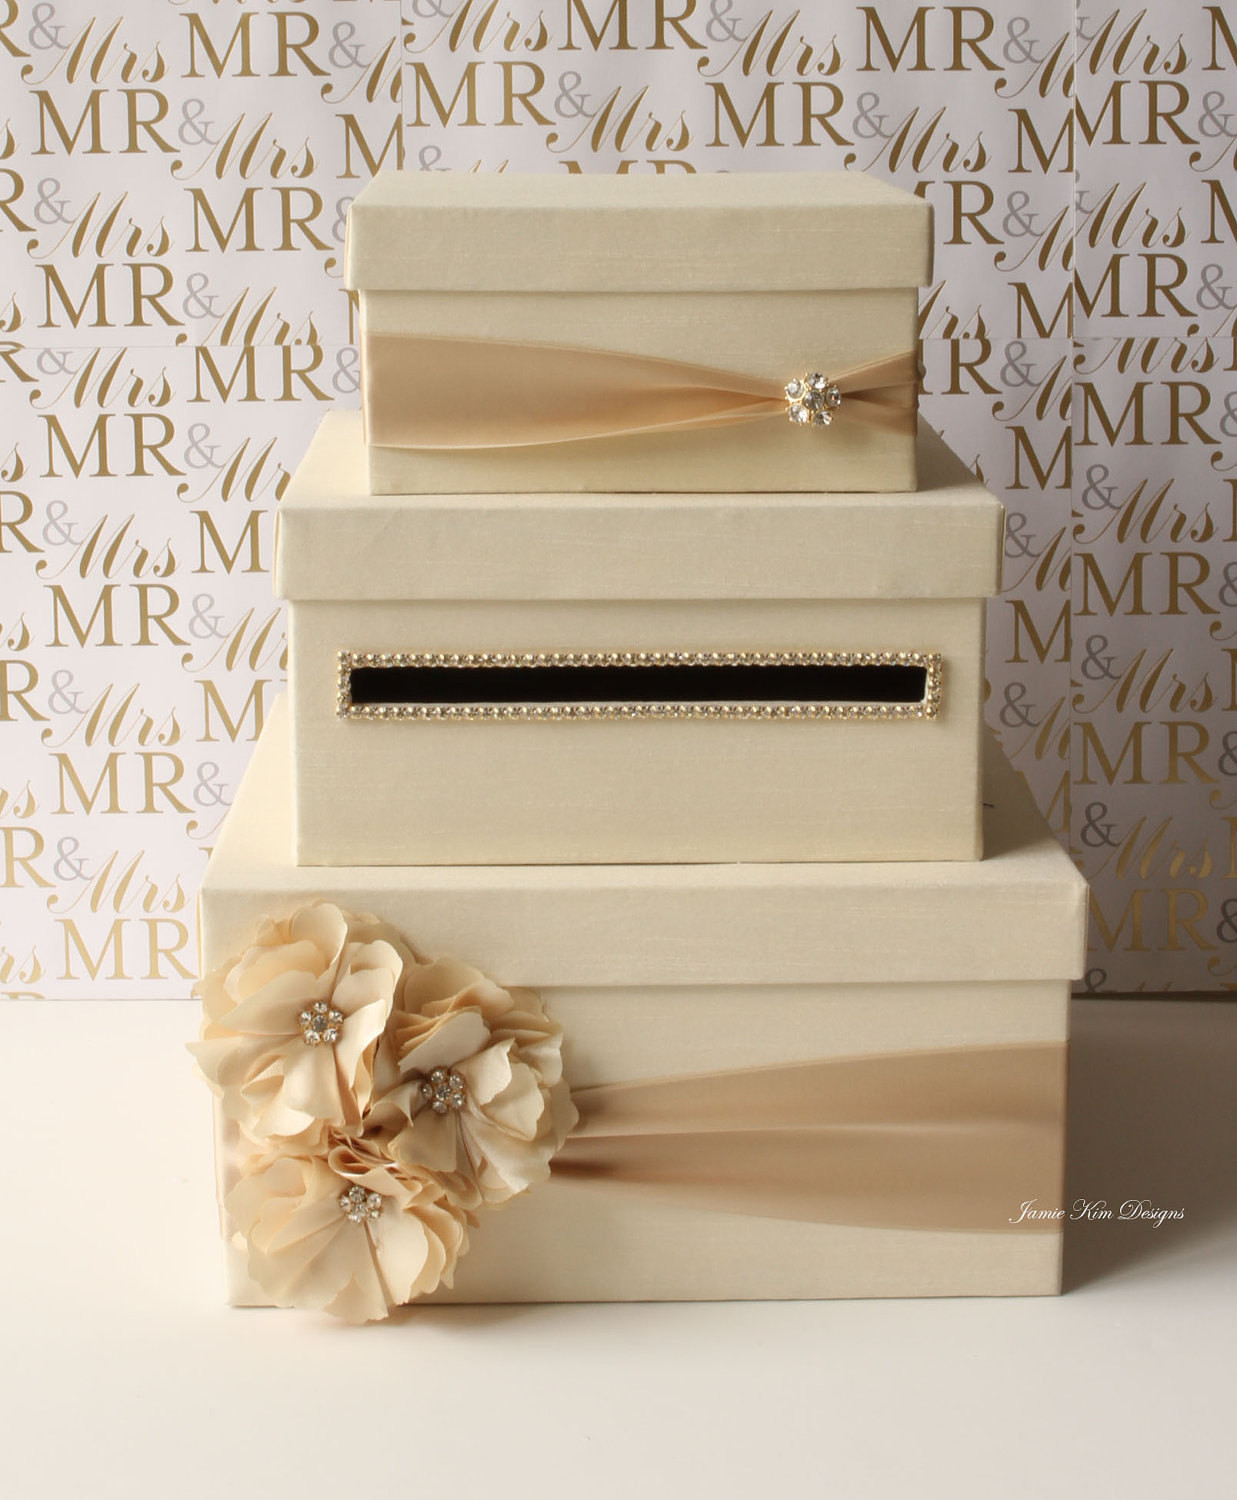 Best ideas about Wedding Card Boxes DIY . Save or Pin Wedding Card Box Money Box Gift Card Holder choose your Now.